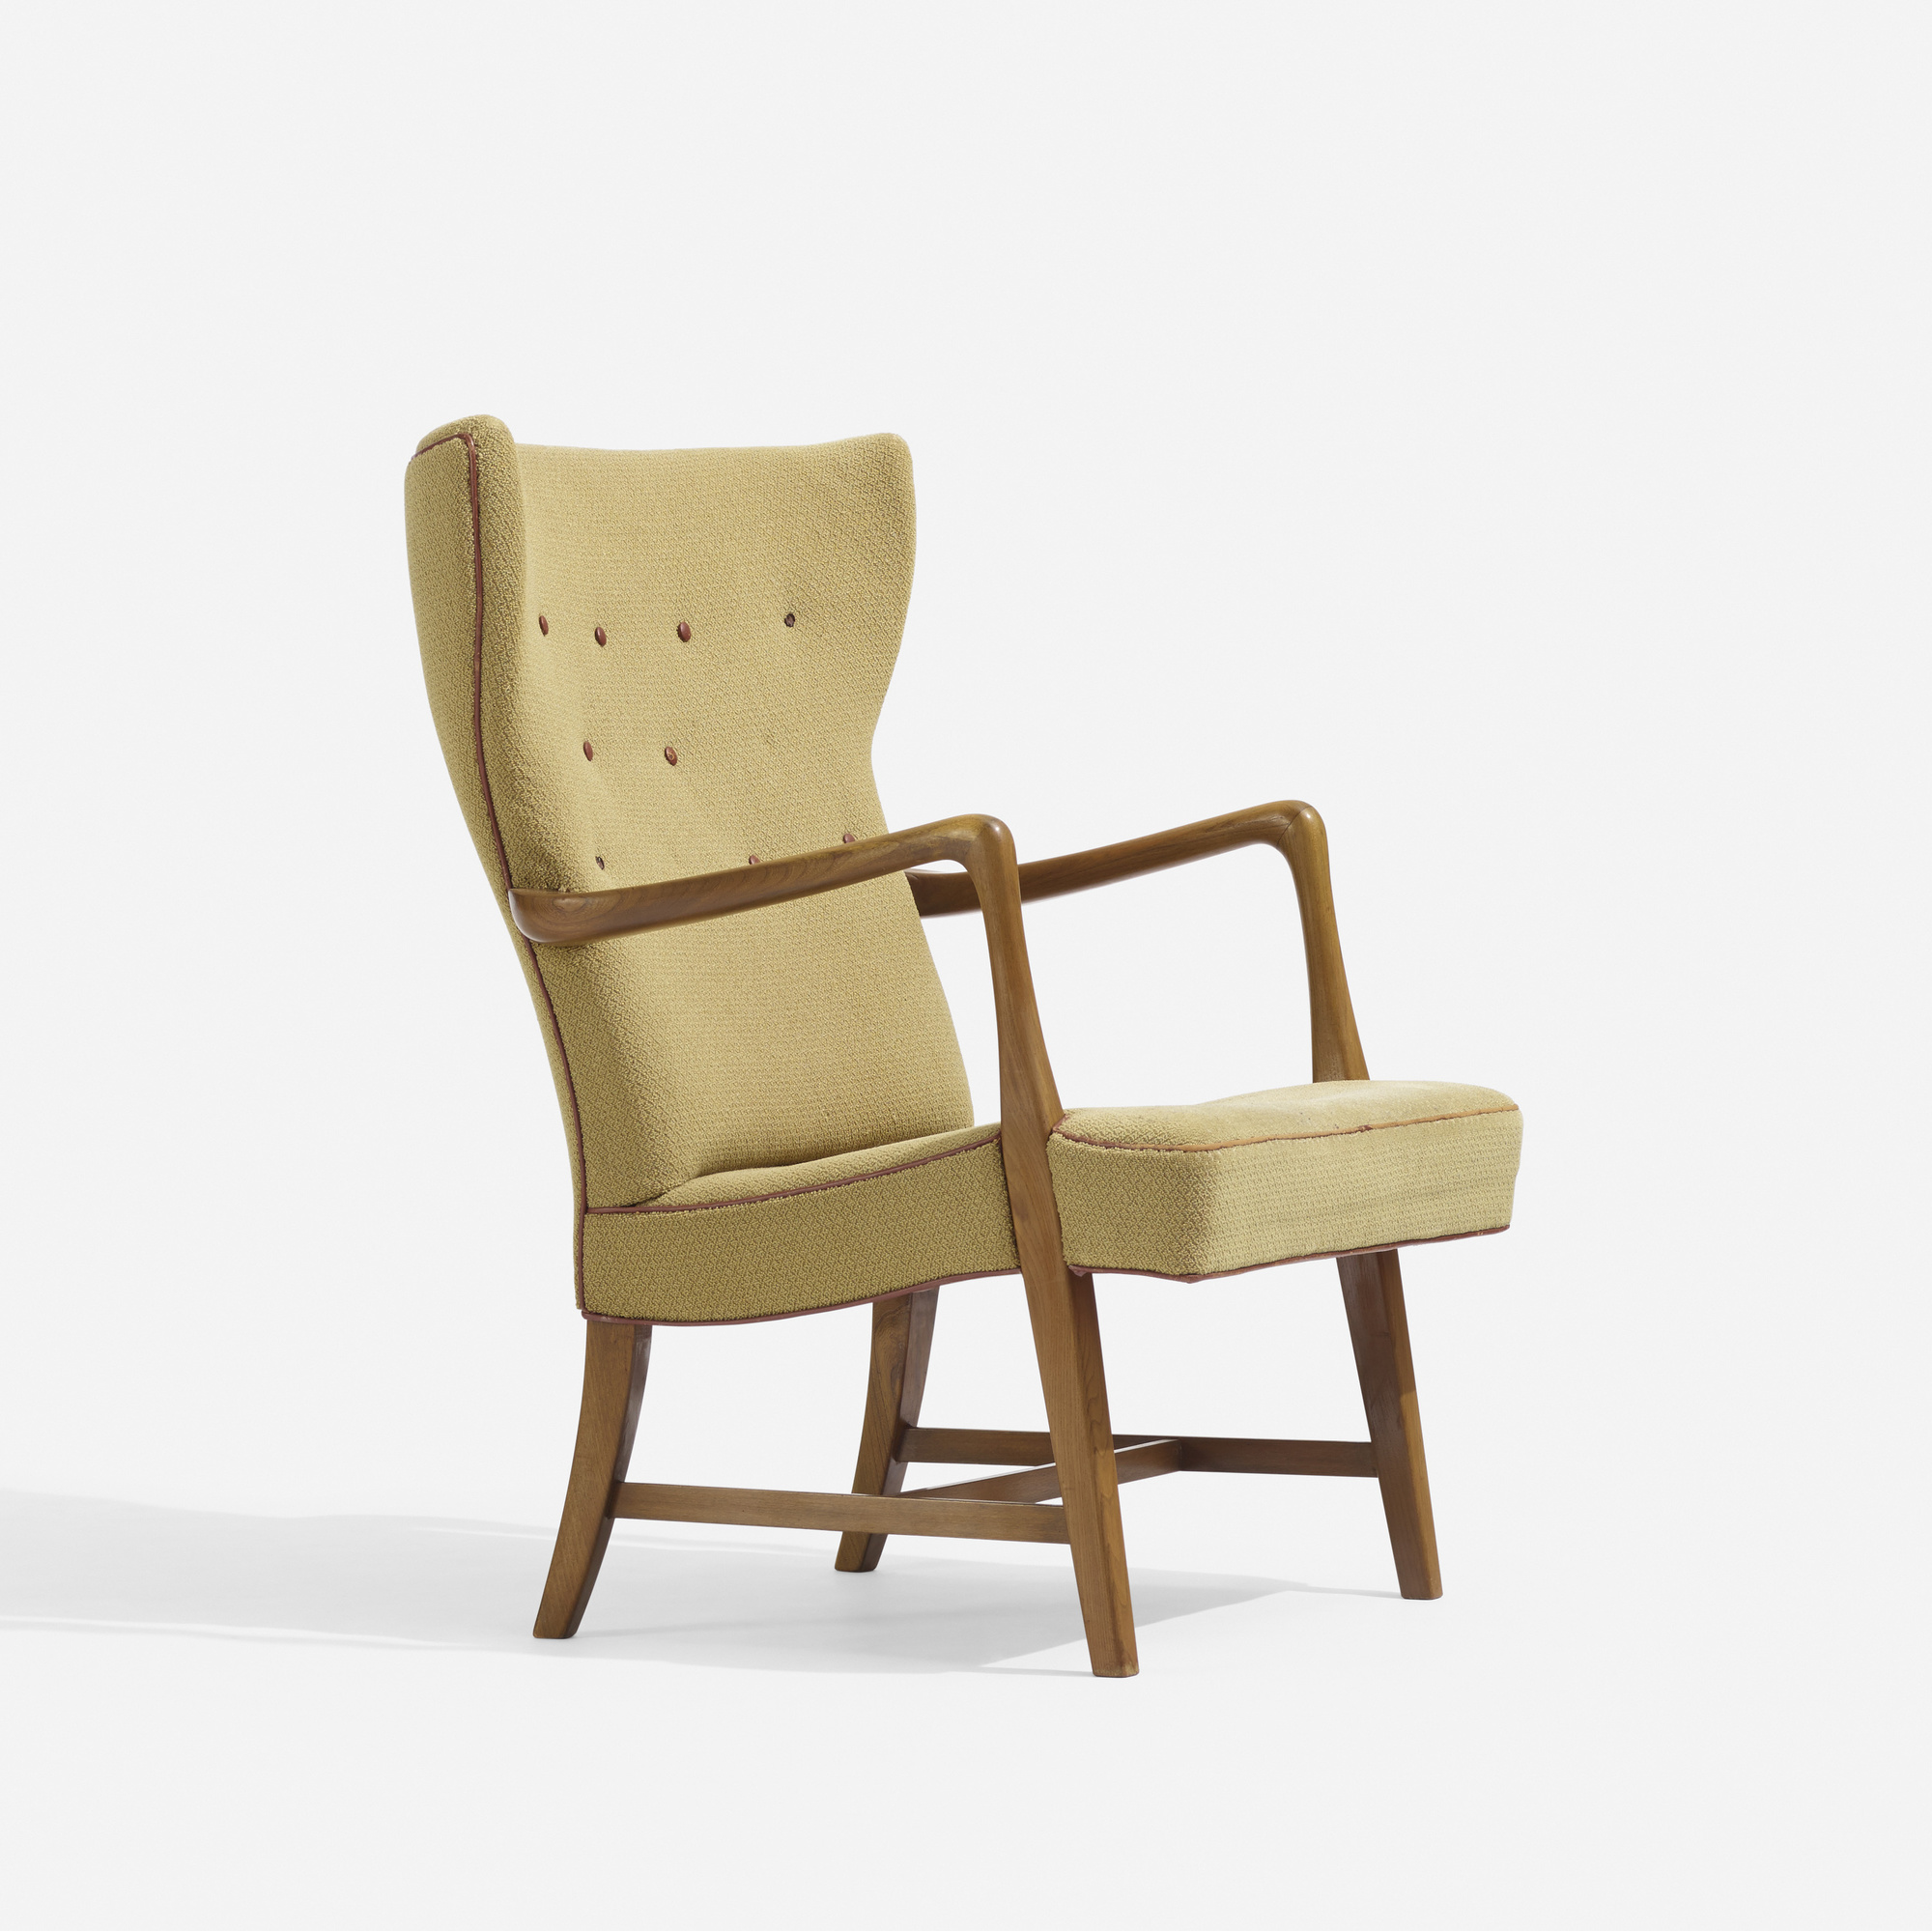 174: Peter Hvidt / lounge chair (1 of 3)